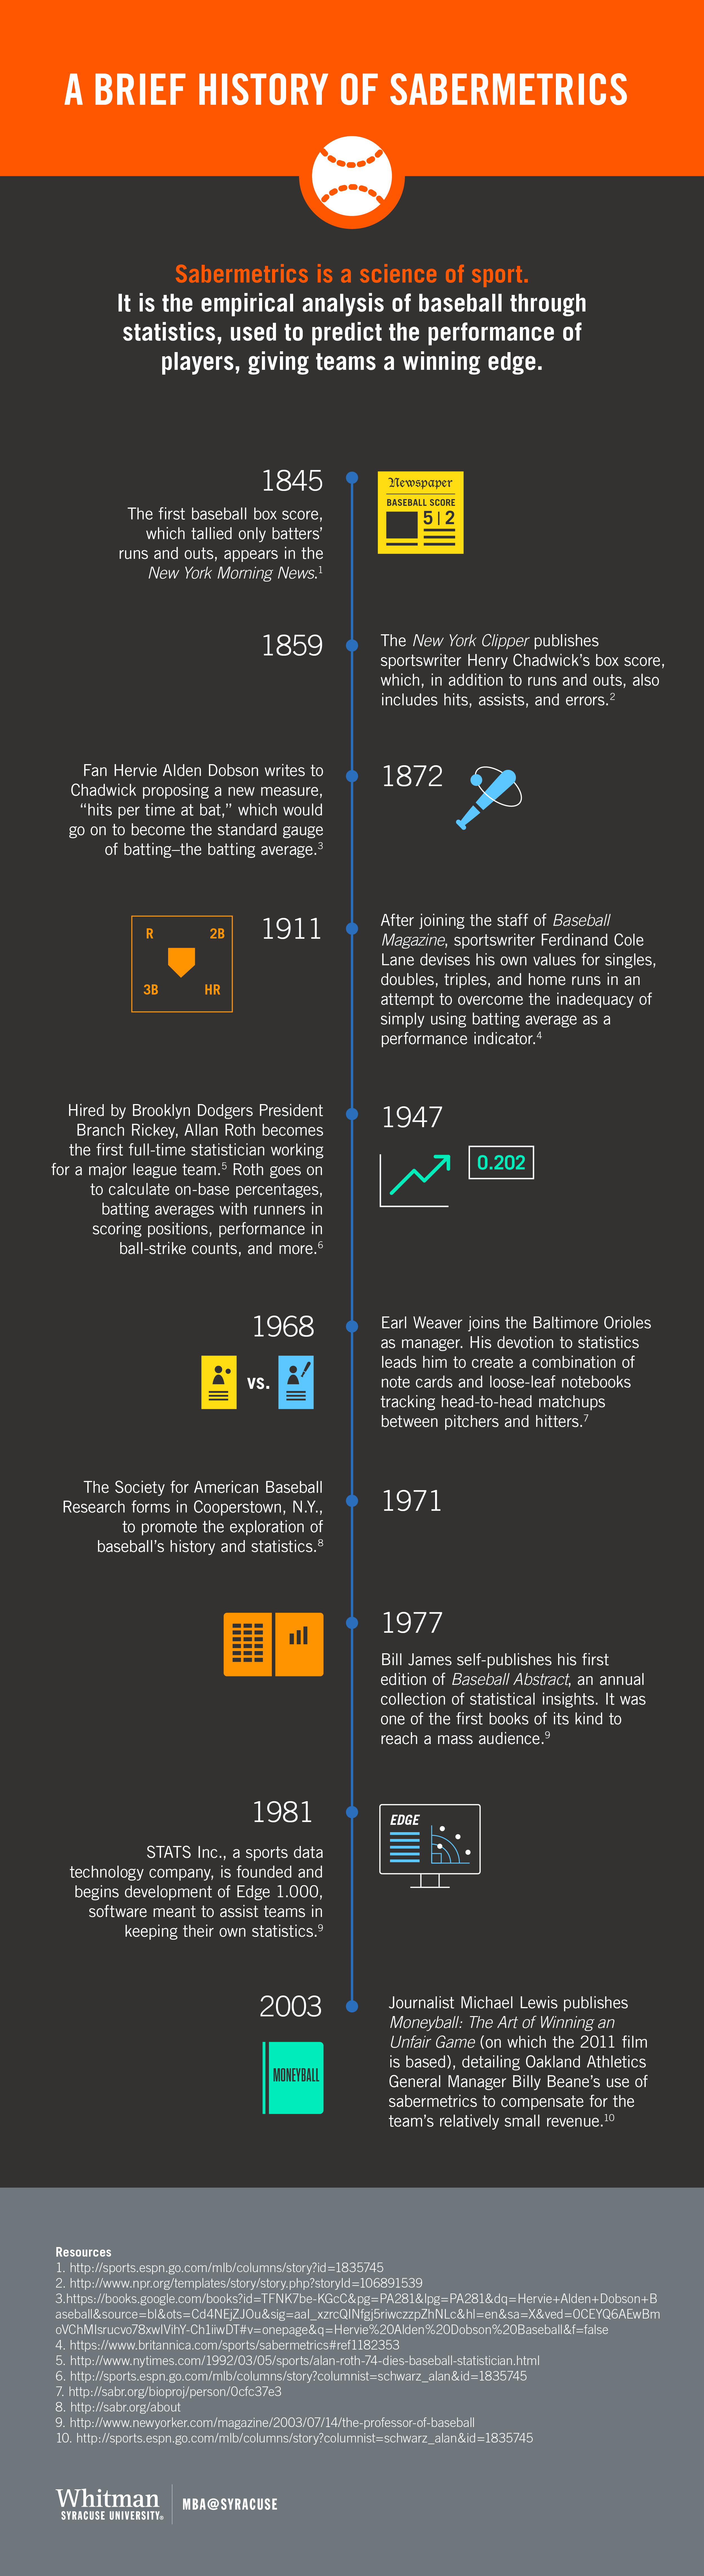 Infographic showing the timeline of sabermetrics.